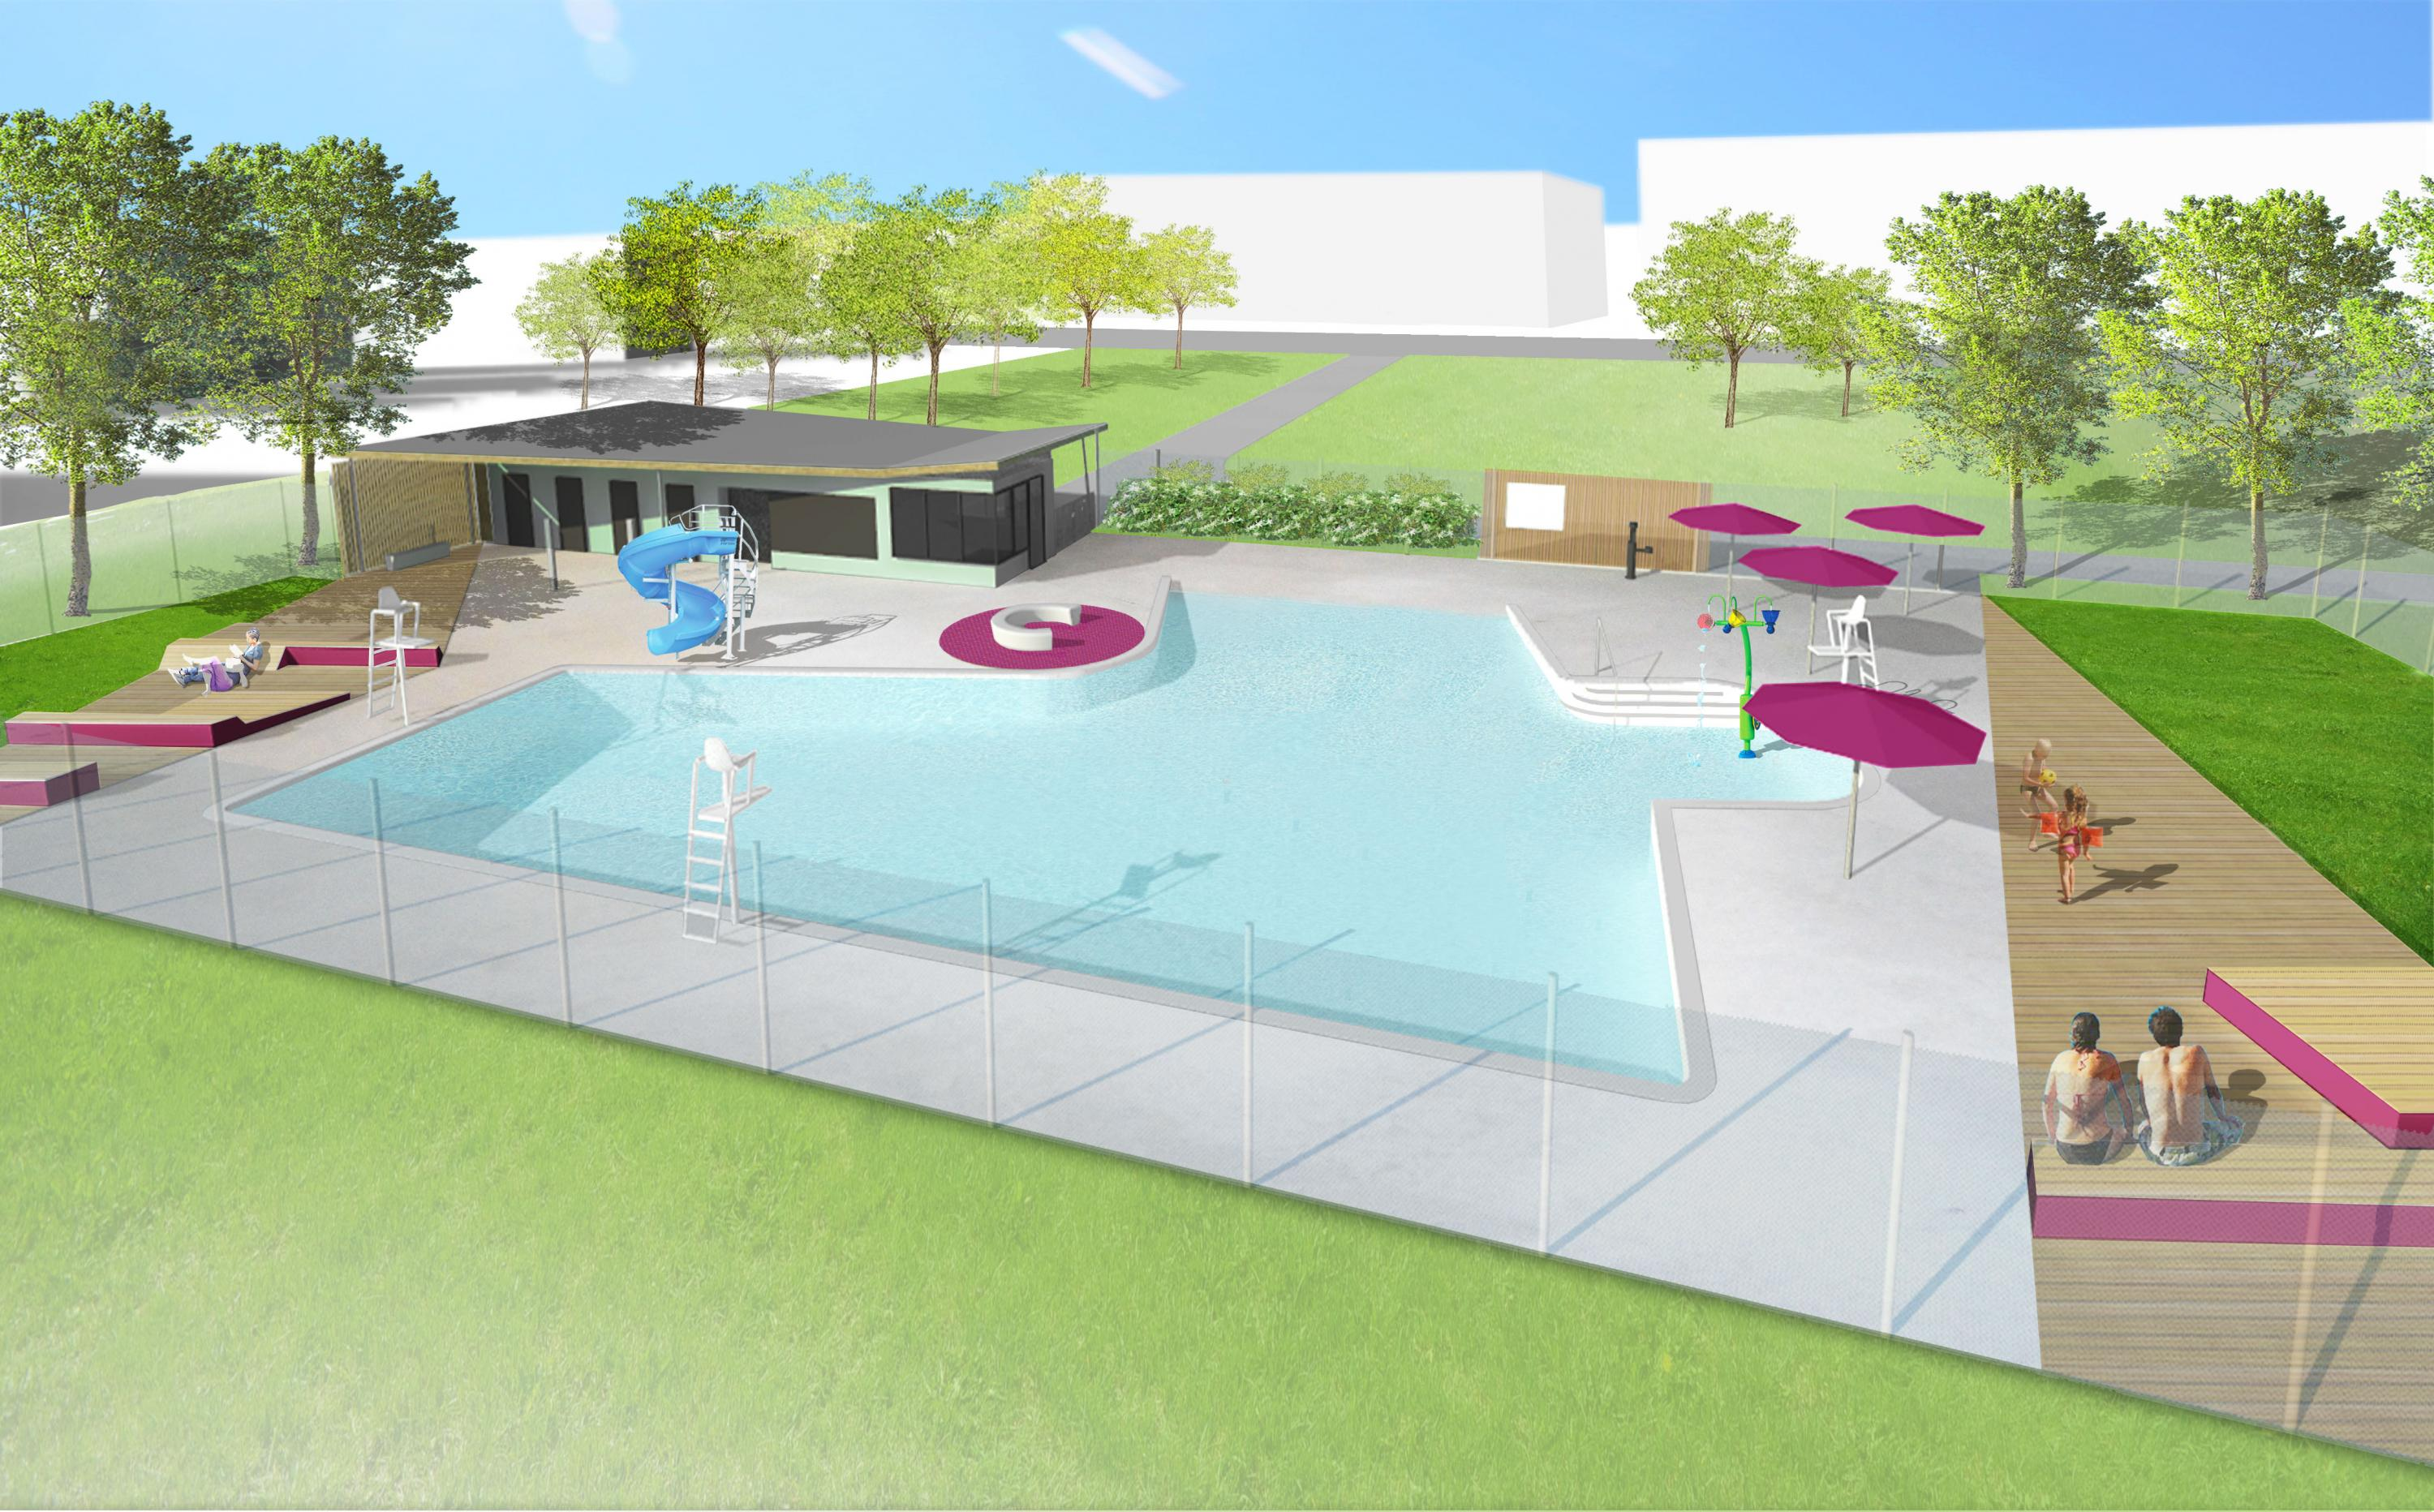 Piscine Bariteau - illustration 3d